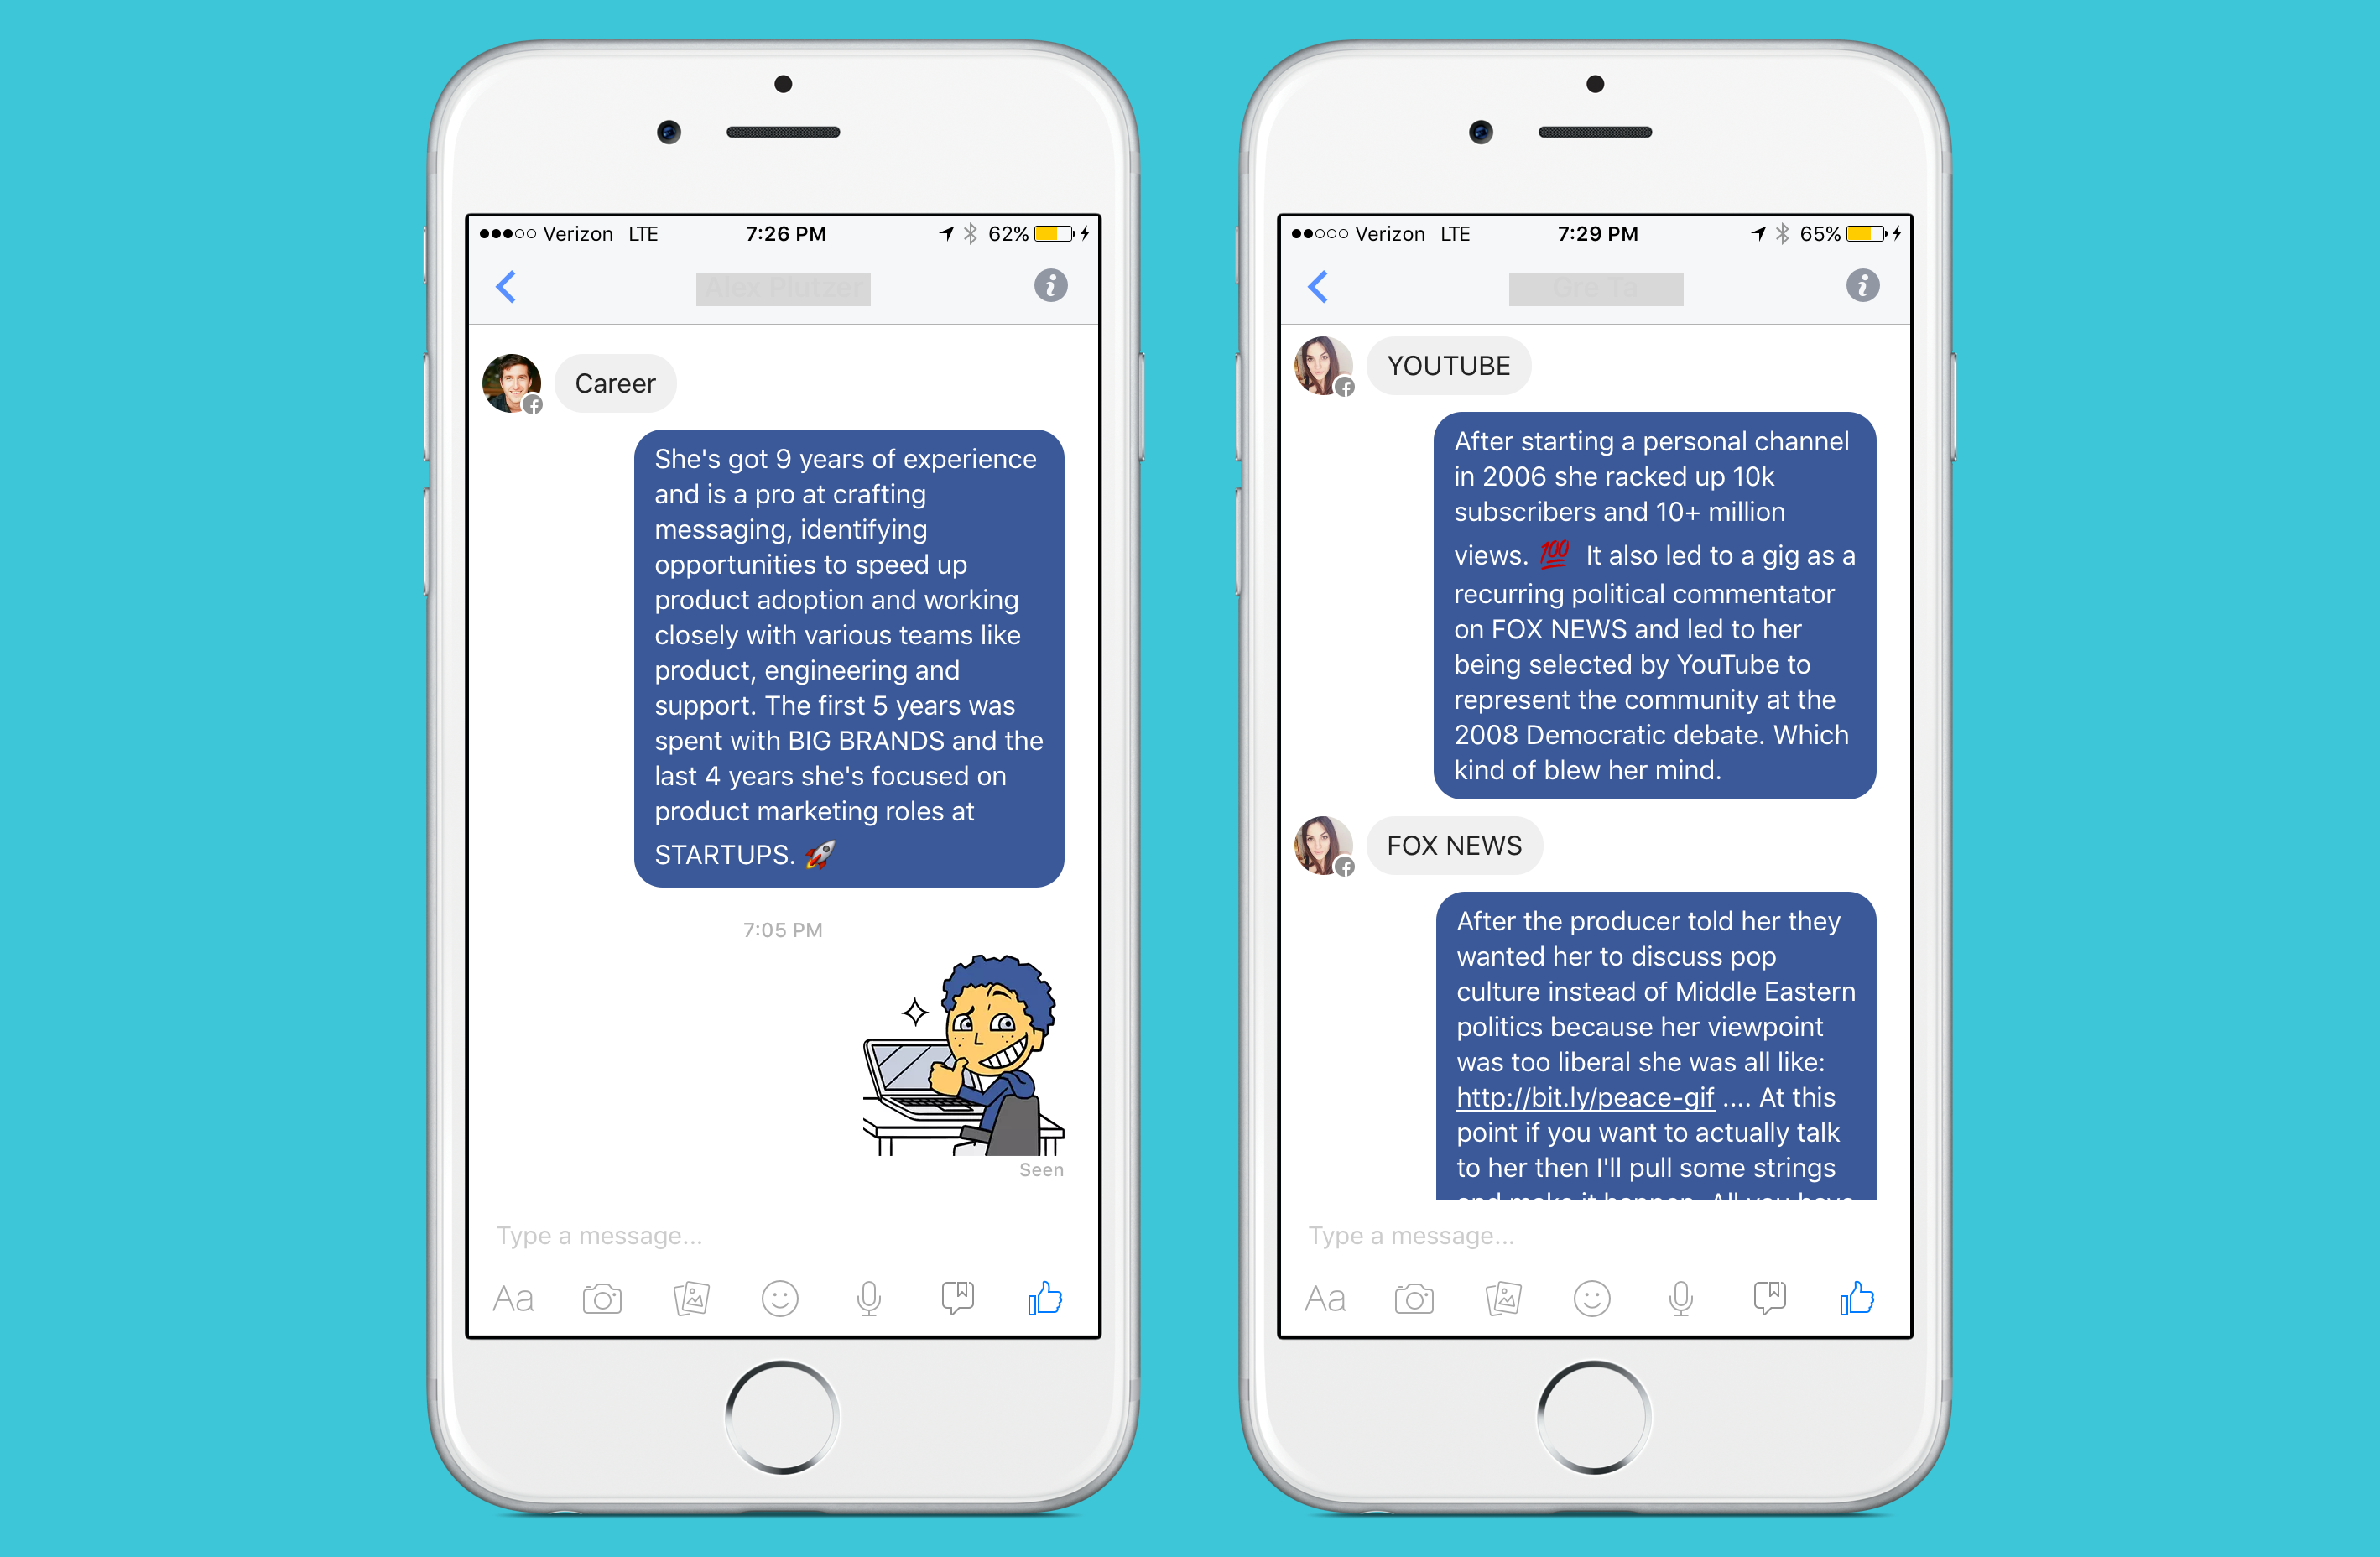 Bots Are Awesome! Humans? Not so Much - Chatbots Magazine